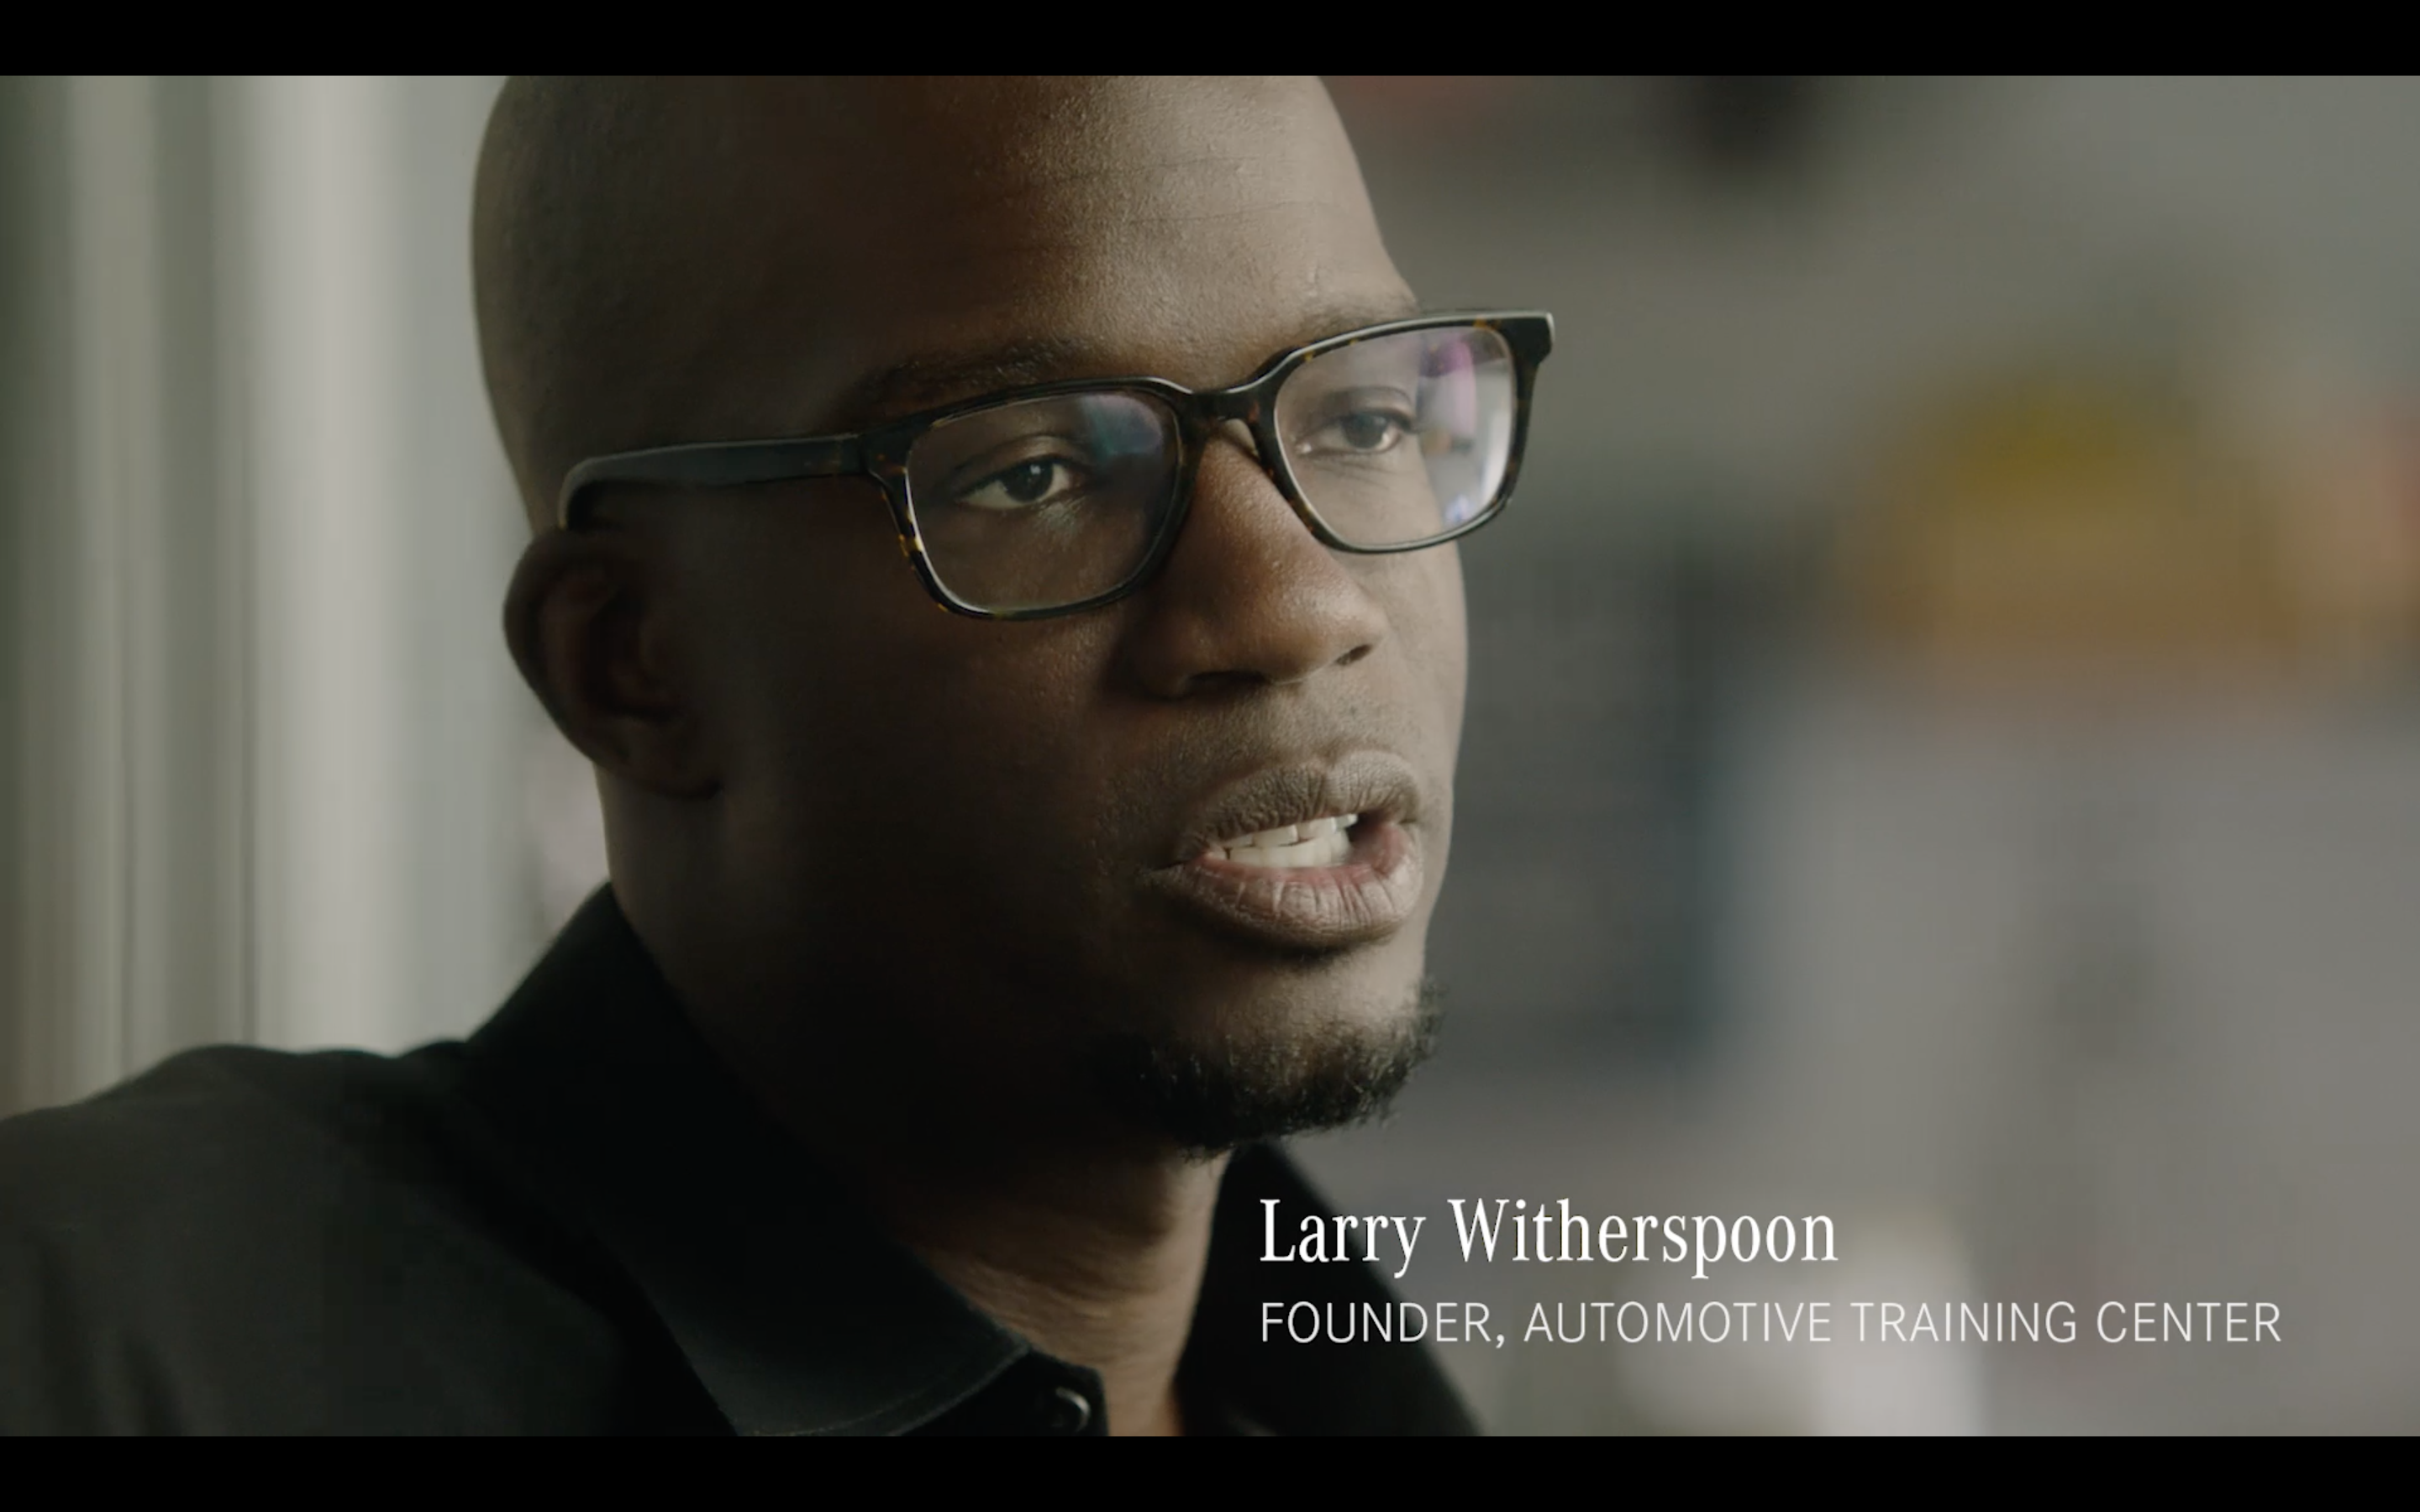 Larry Witherspoon